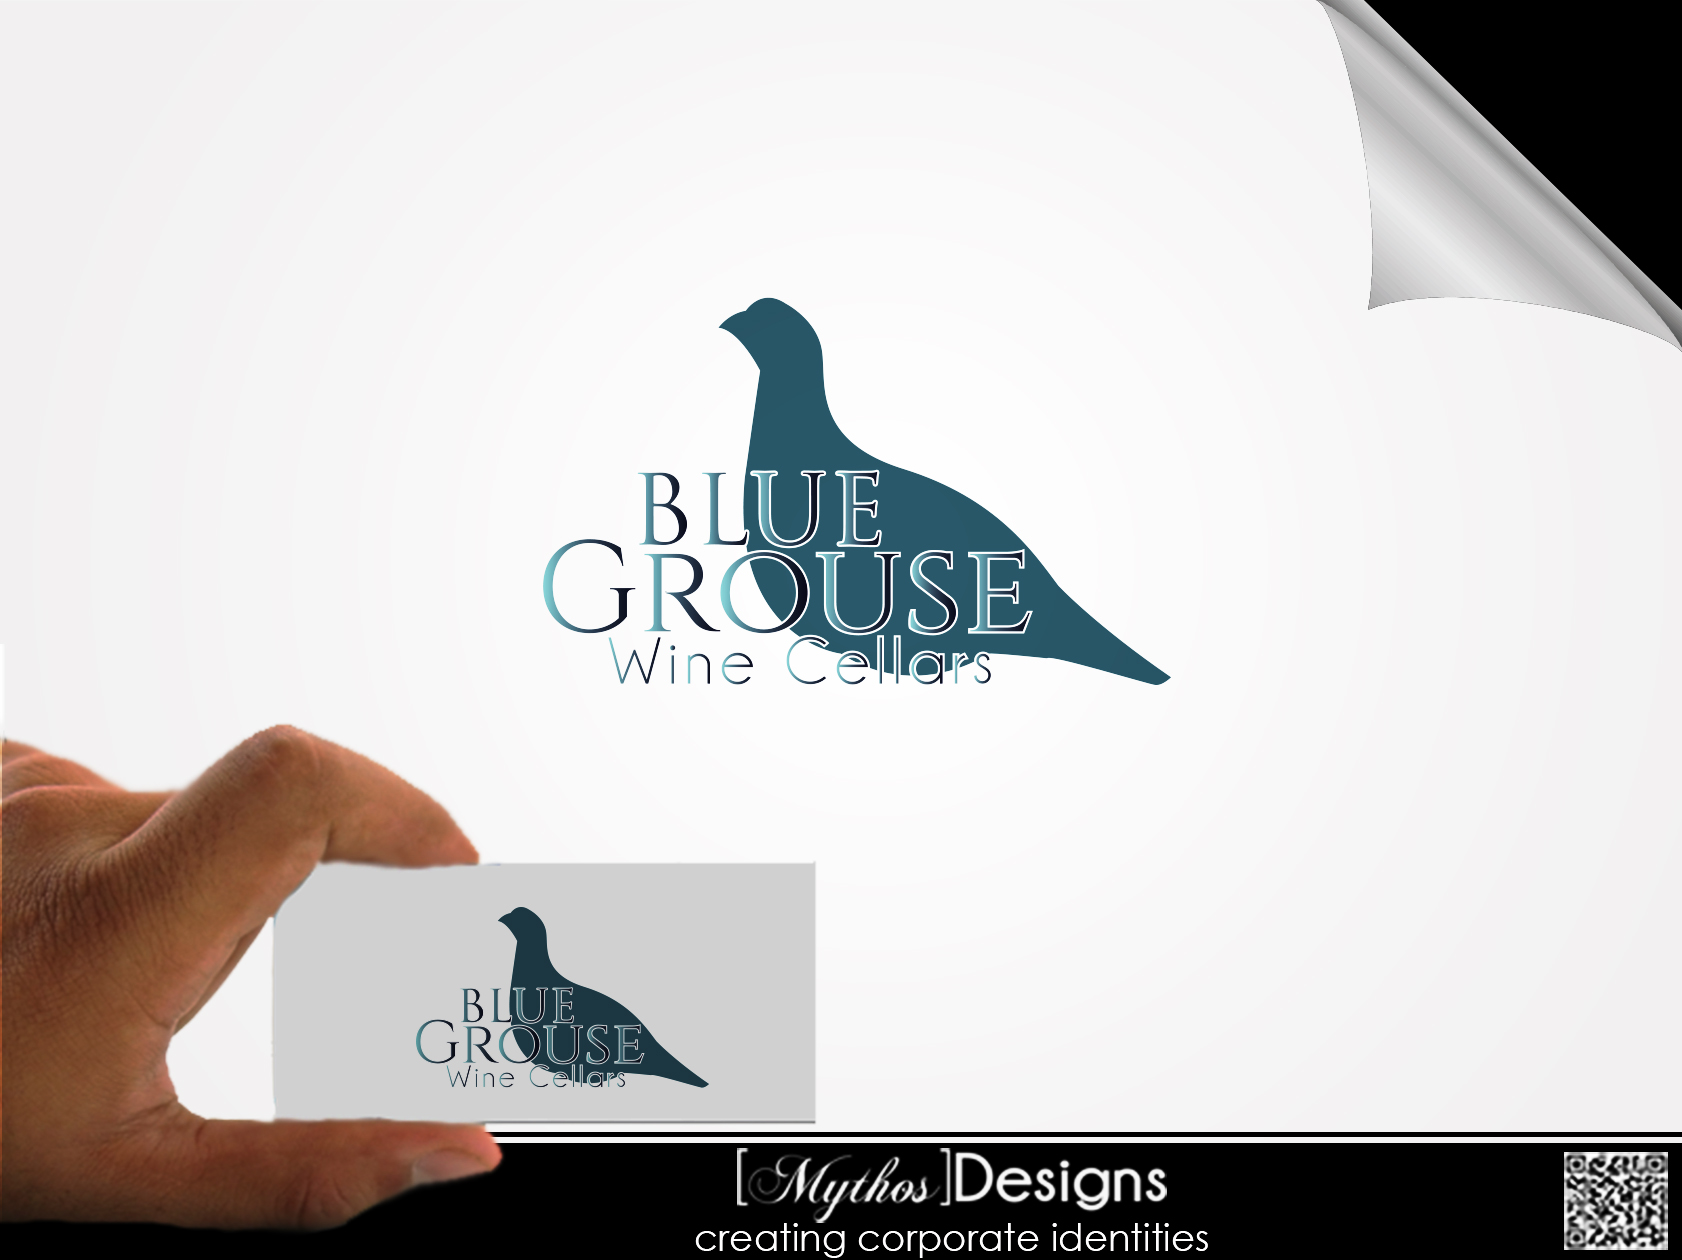 Logo Design by Mythos Designs - Entry No. 167 in the Logo Design Contest Creative Logo Design for Blue Grouse Wine Cellars.